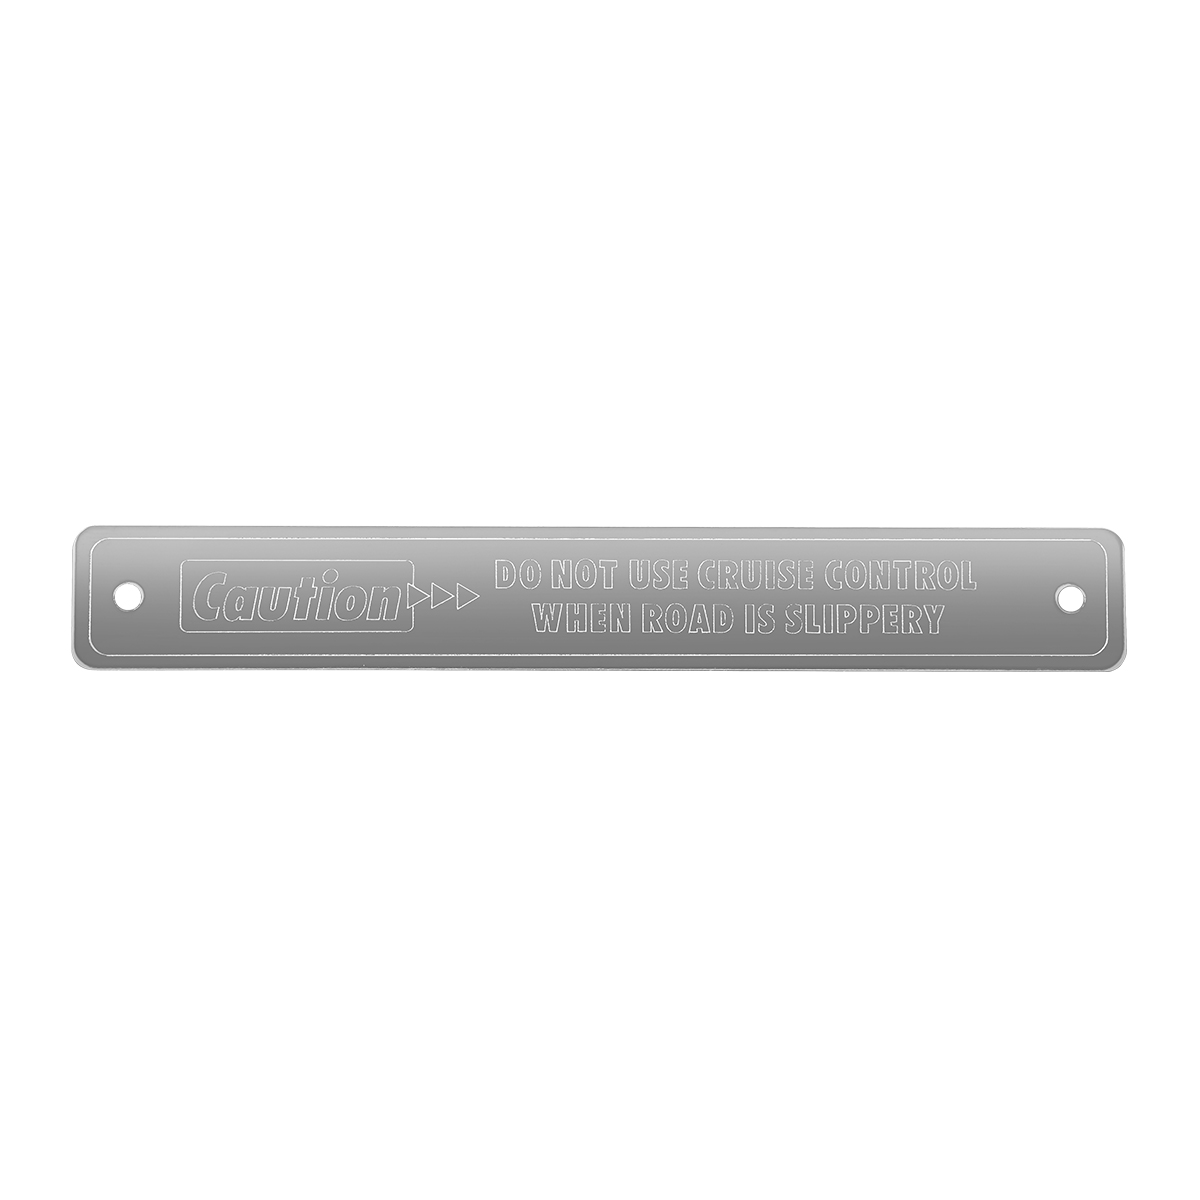 68621 Stainless Steel Caution Cruise Control Statement Plate for Kenworth